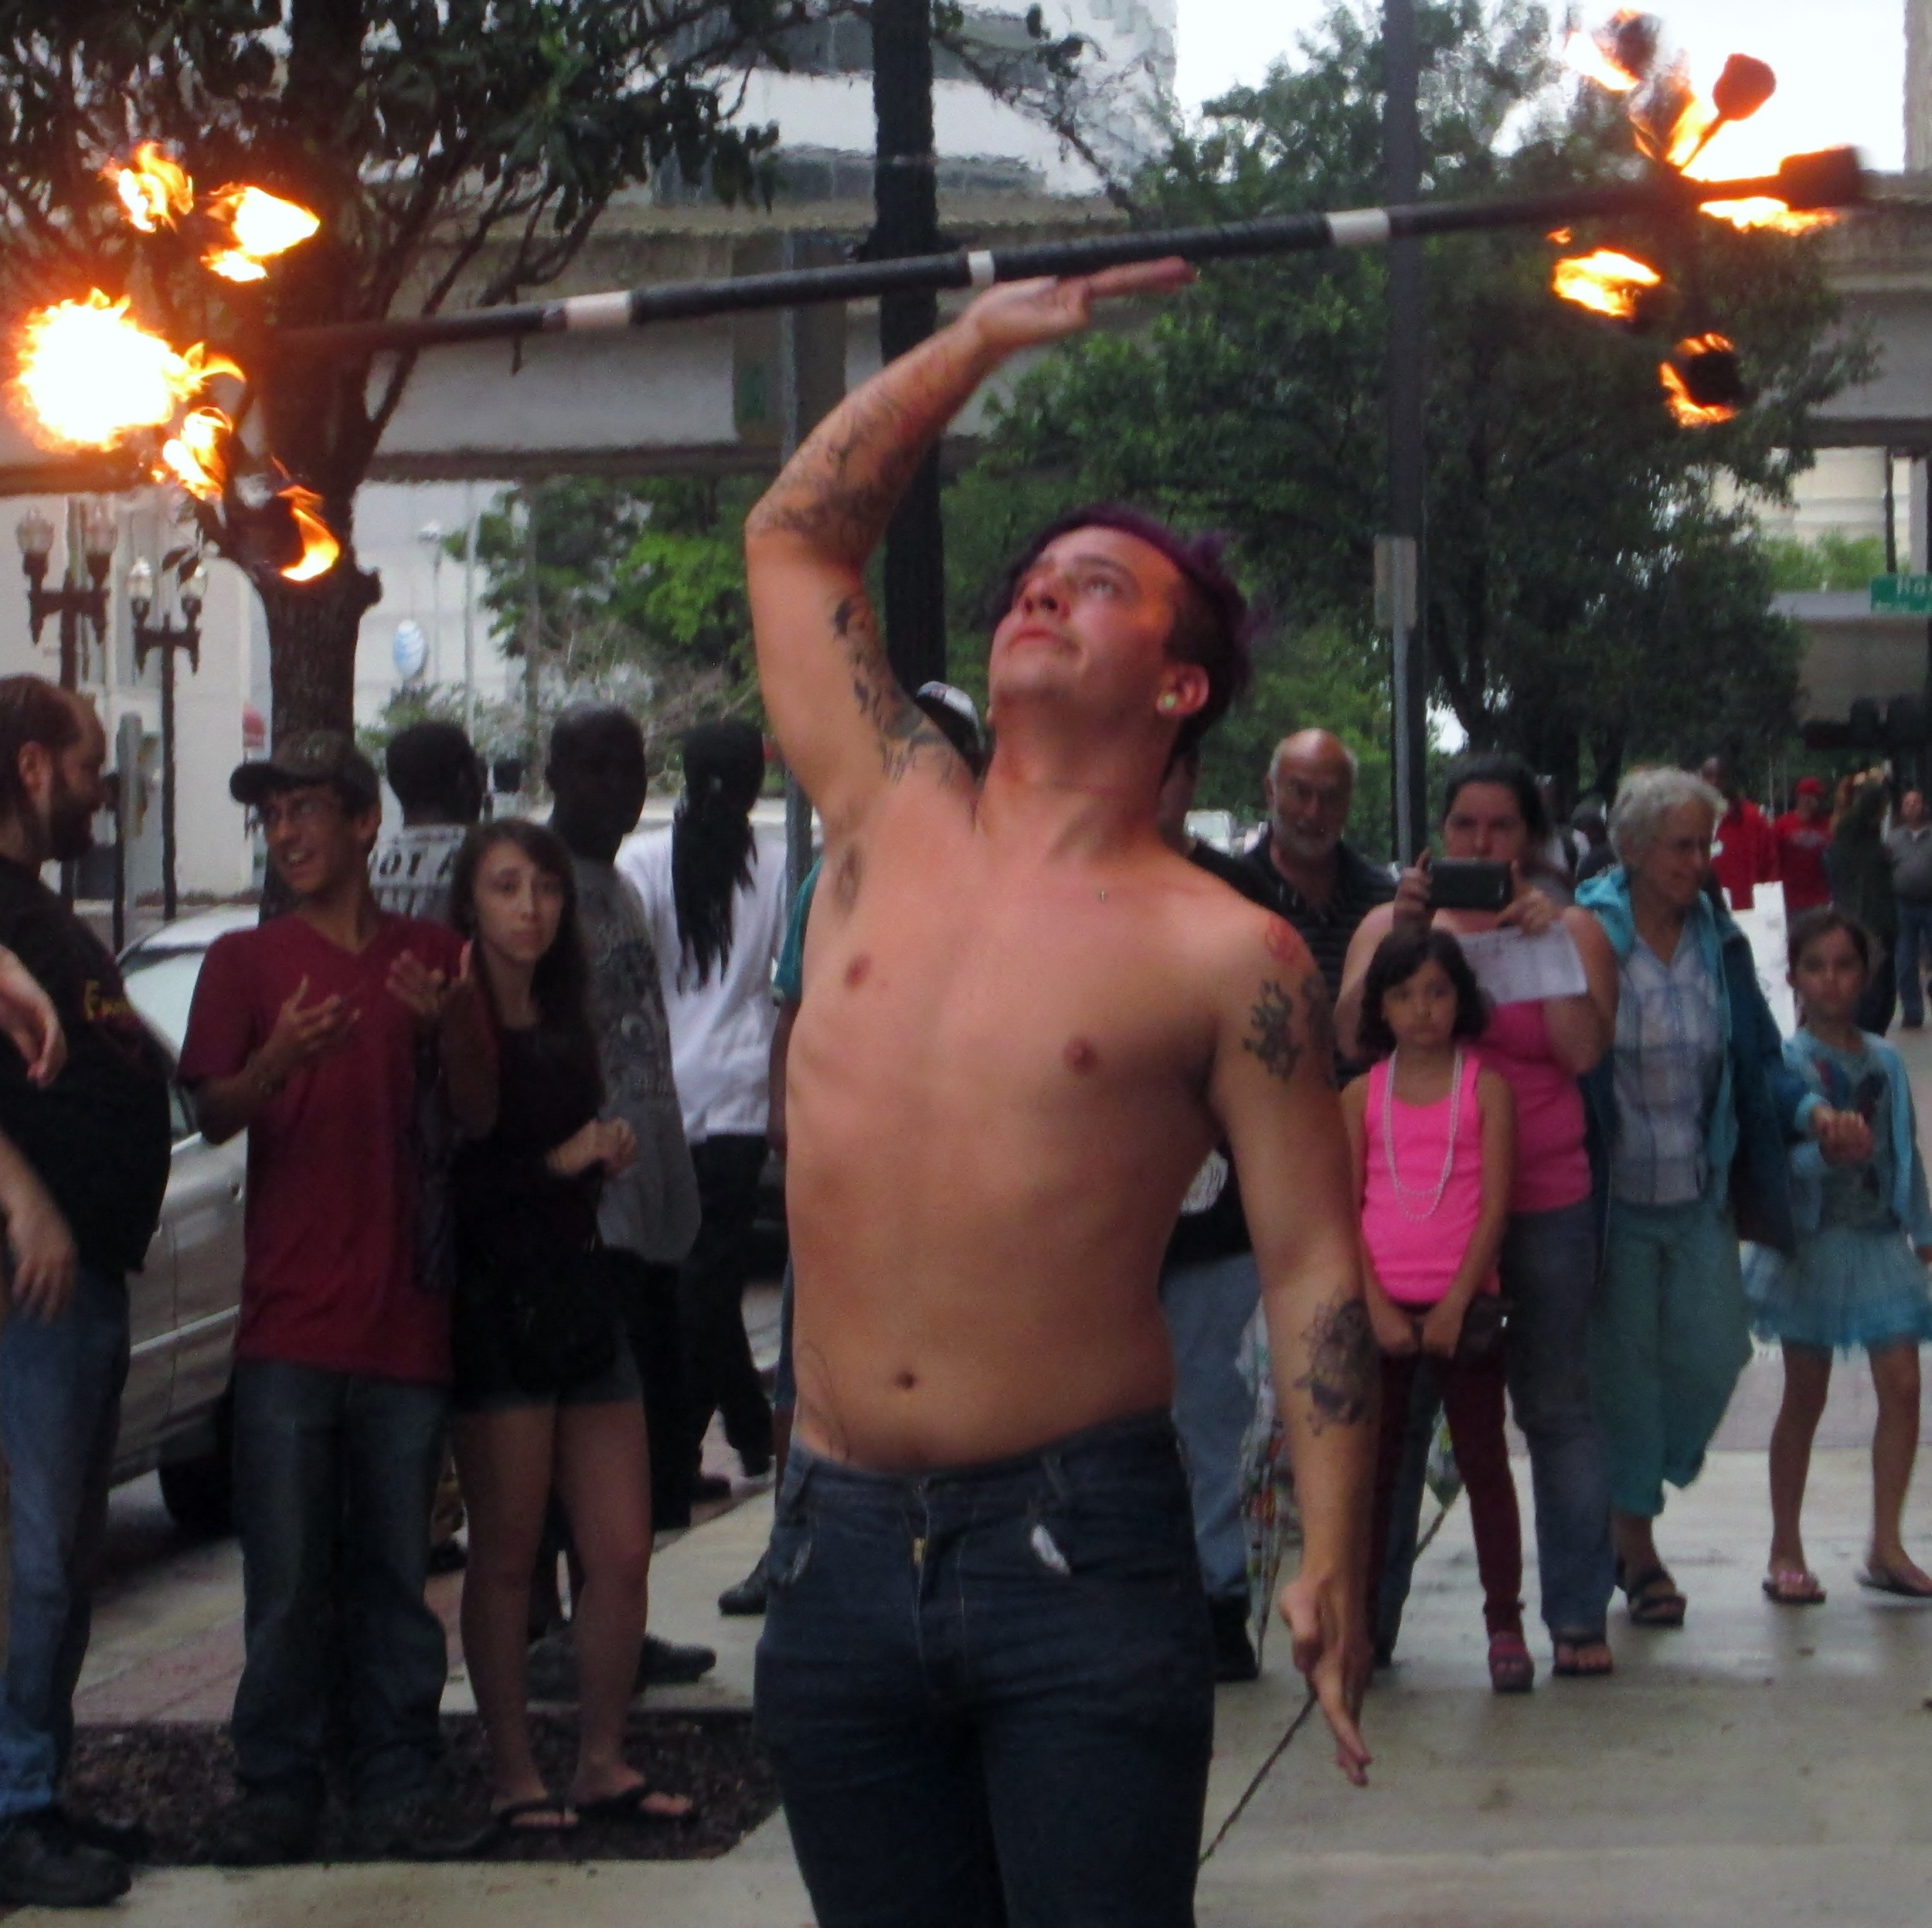 A man entertains the crowd with fire and his fancy moves.